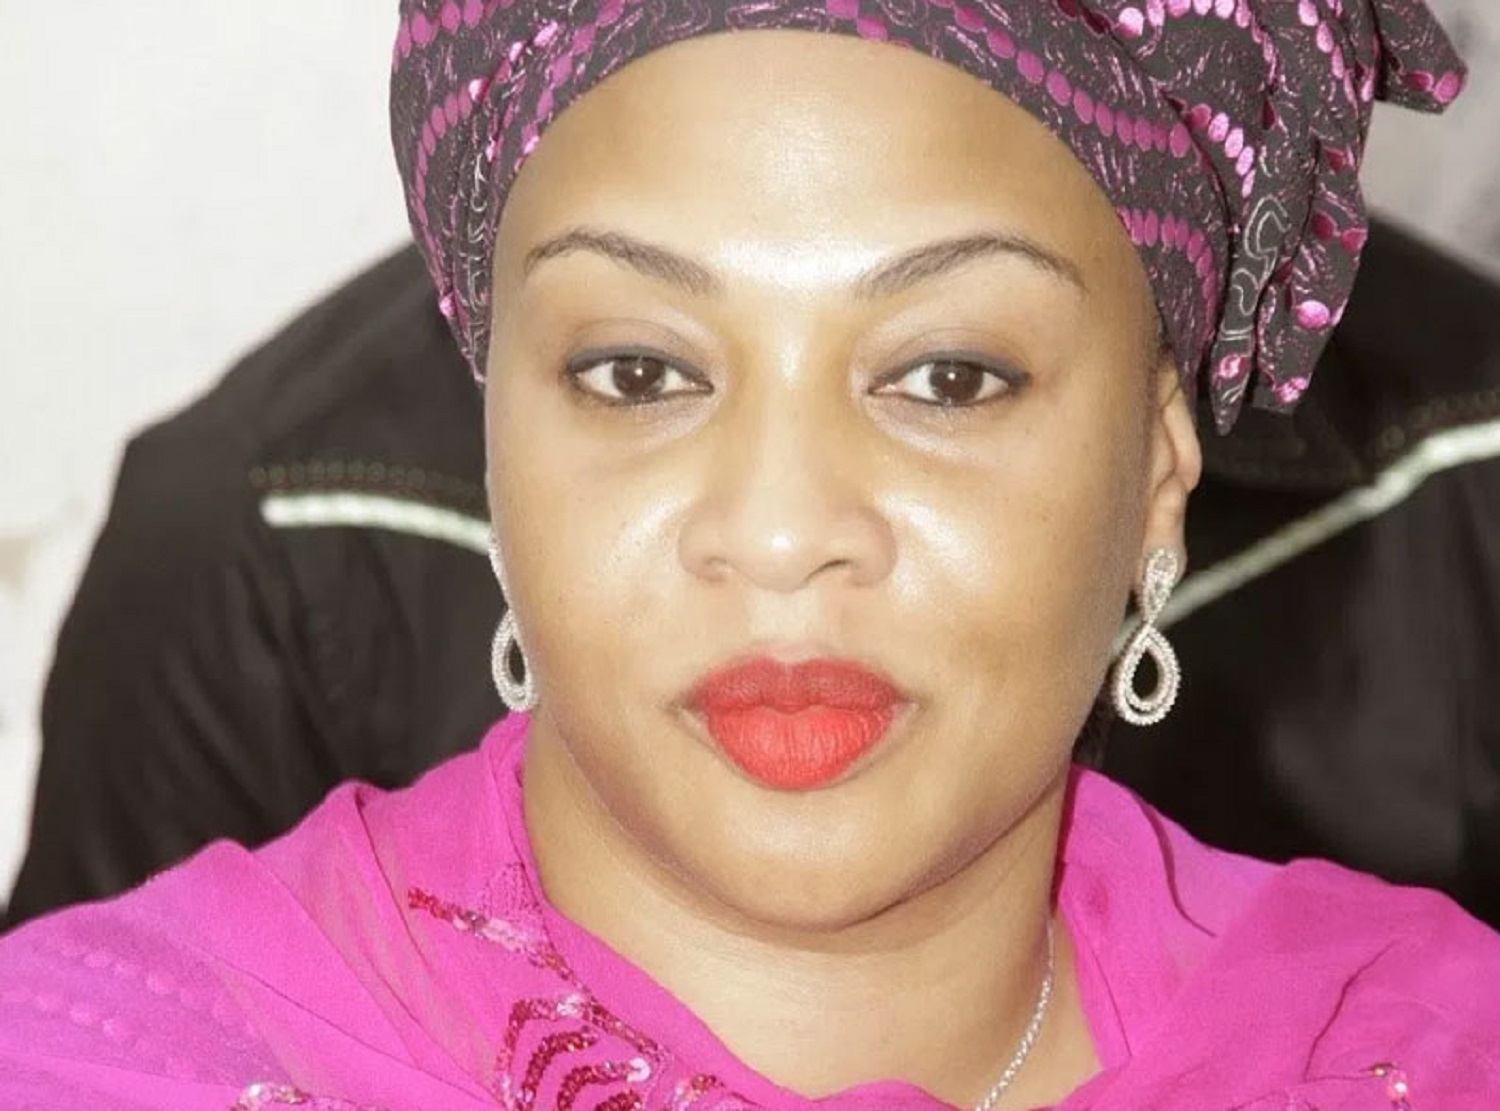 Transport ministry sets up committee for N10bn palliative distribution